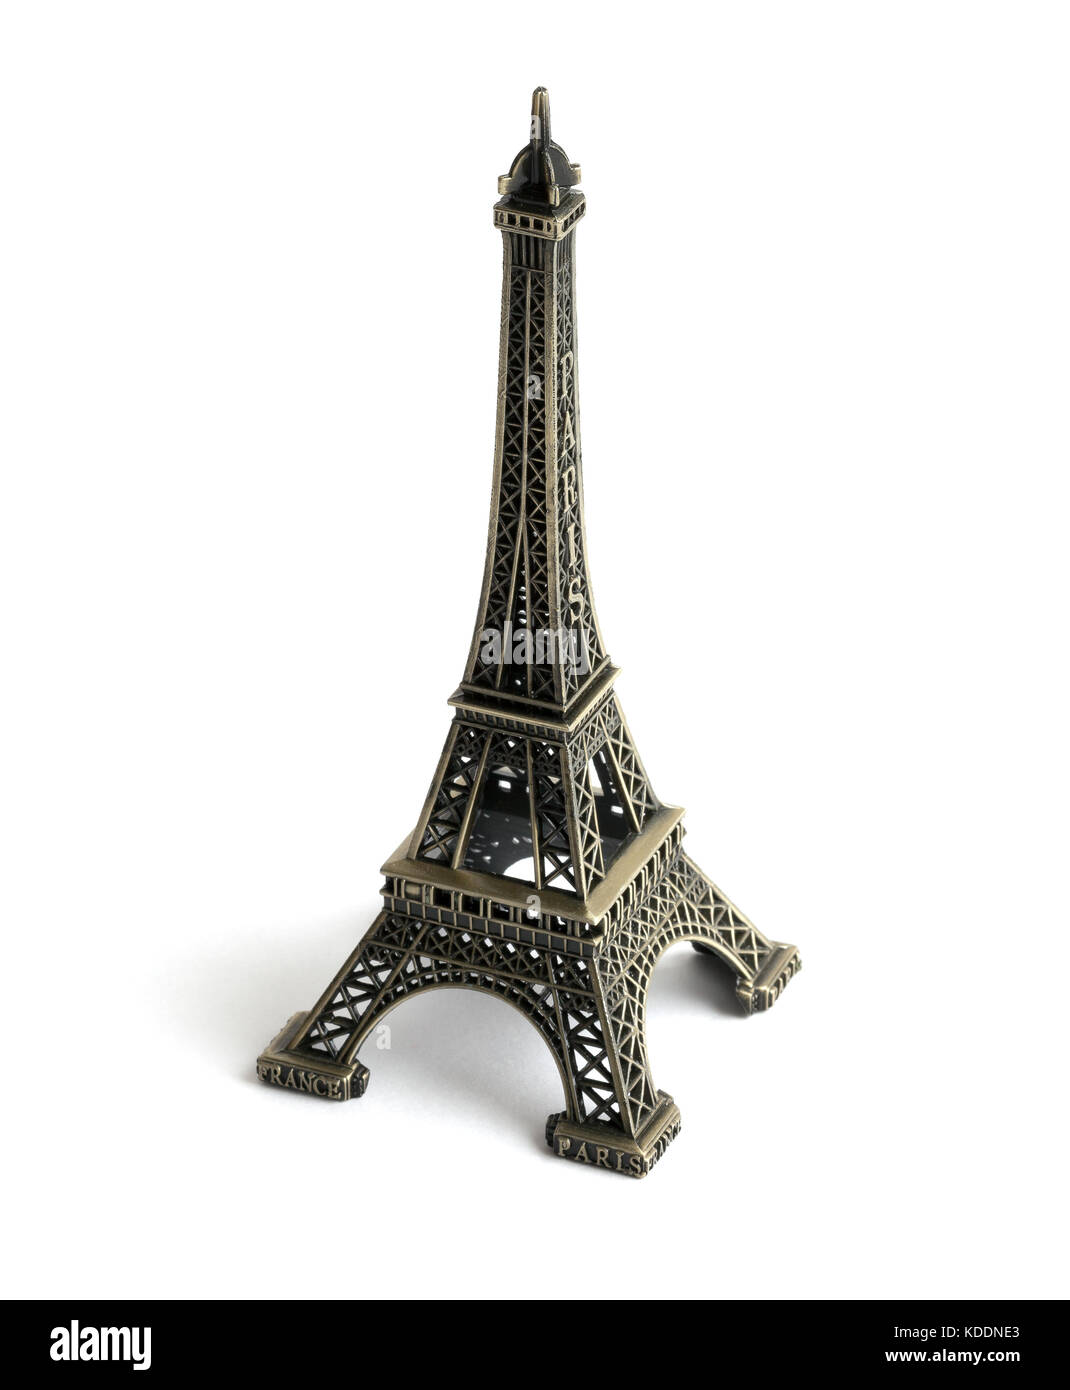 model of the Eiffel Tower - Stock Image